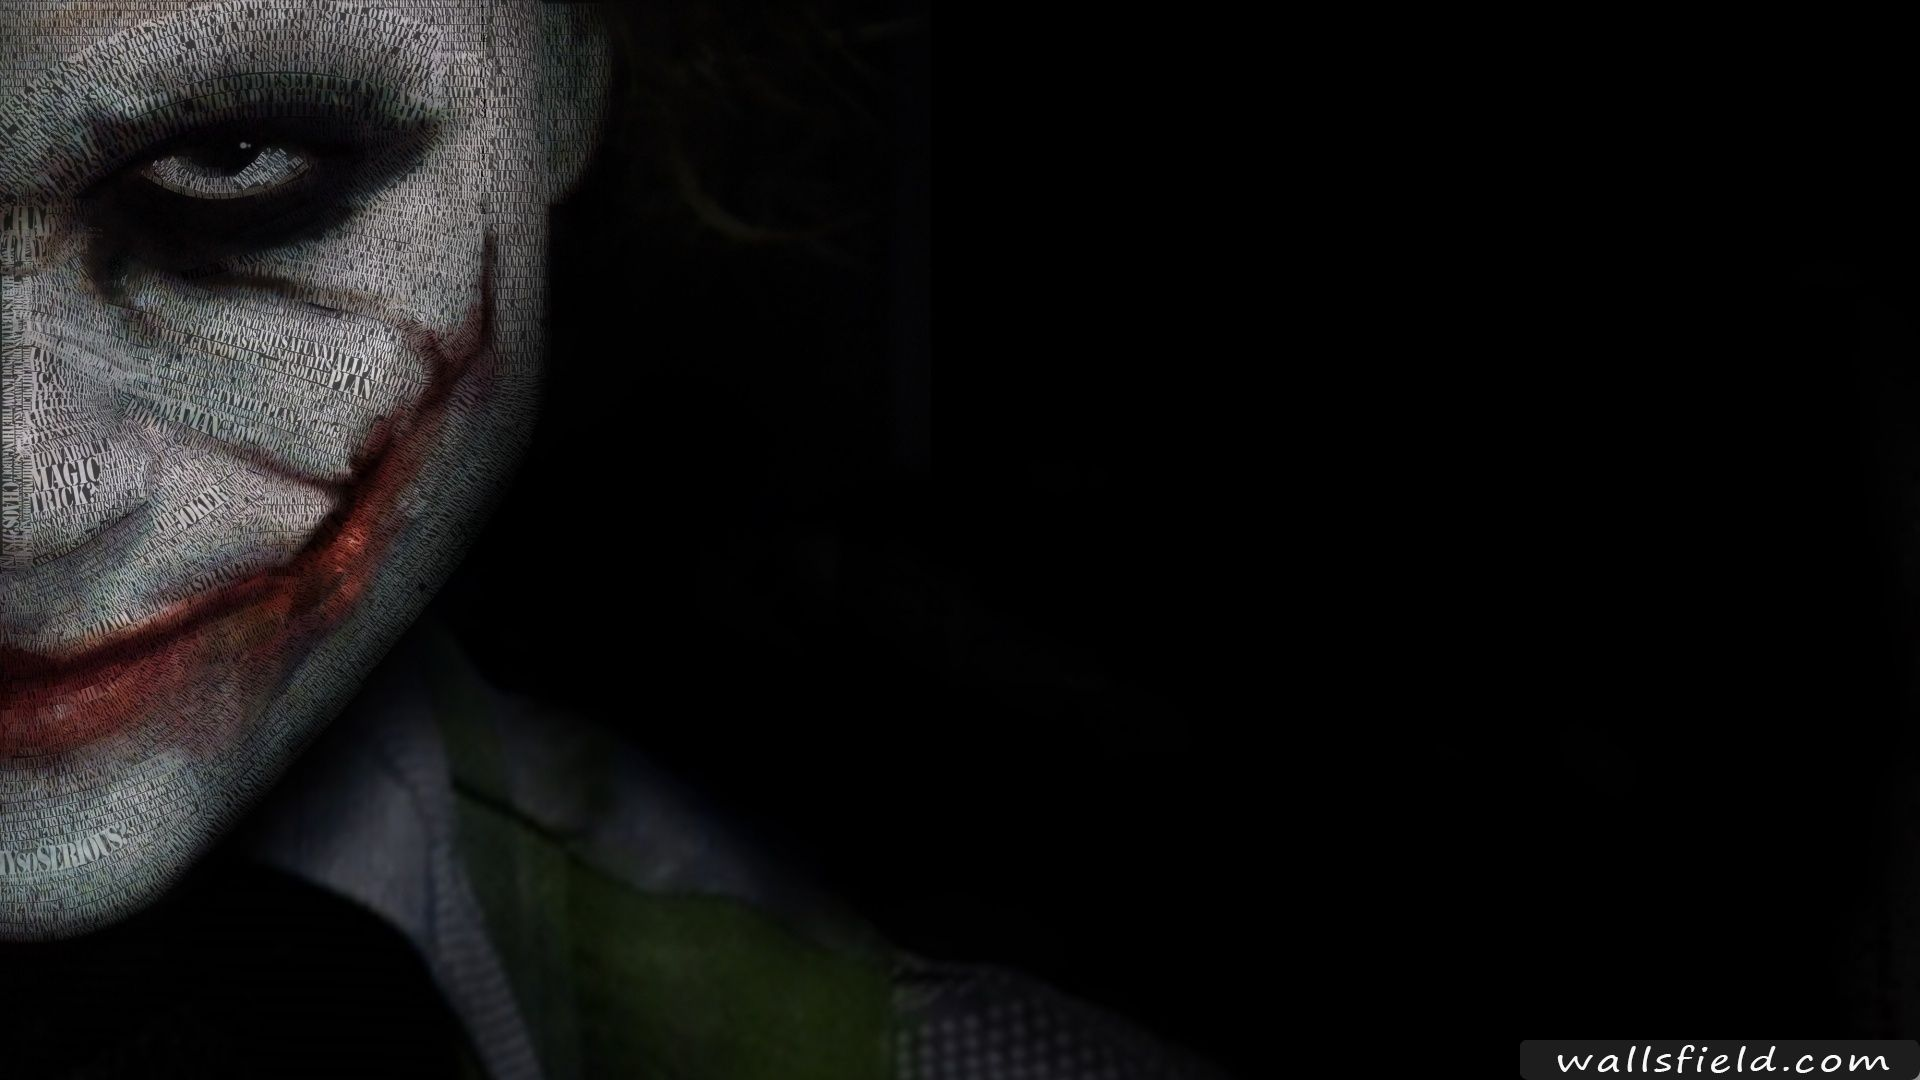 Joker Smile Joker Wallpapers Joker Hd Wallpaper Heath Ledger